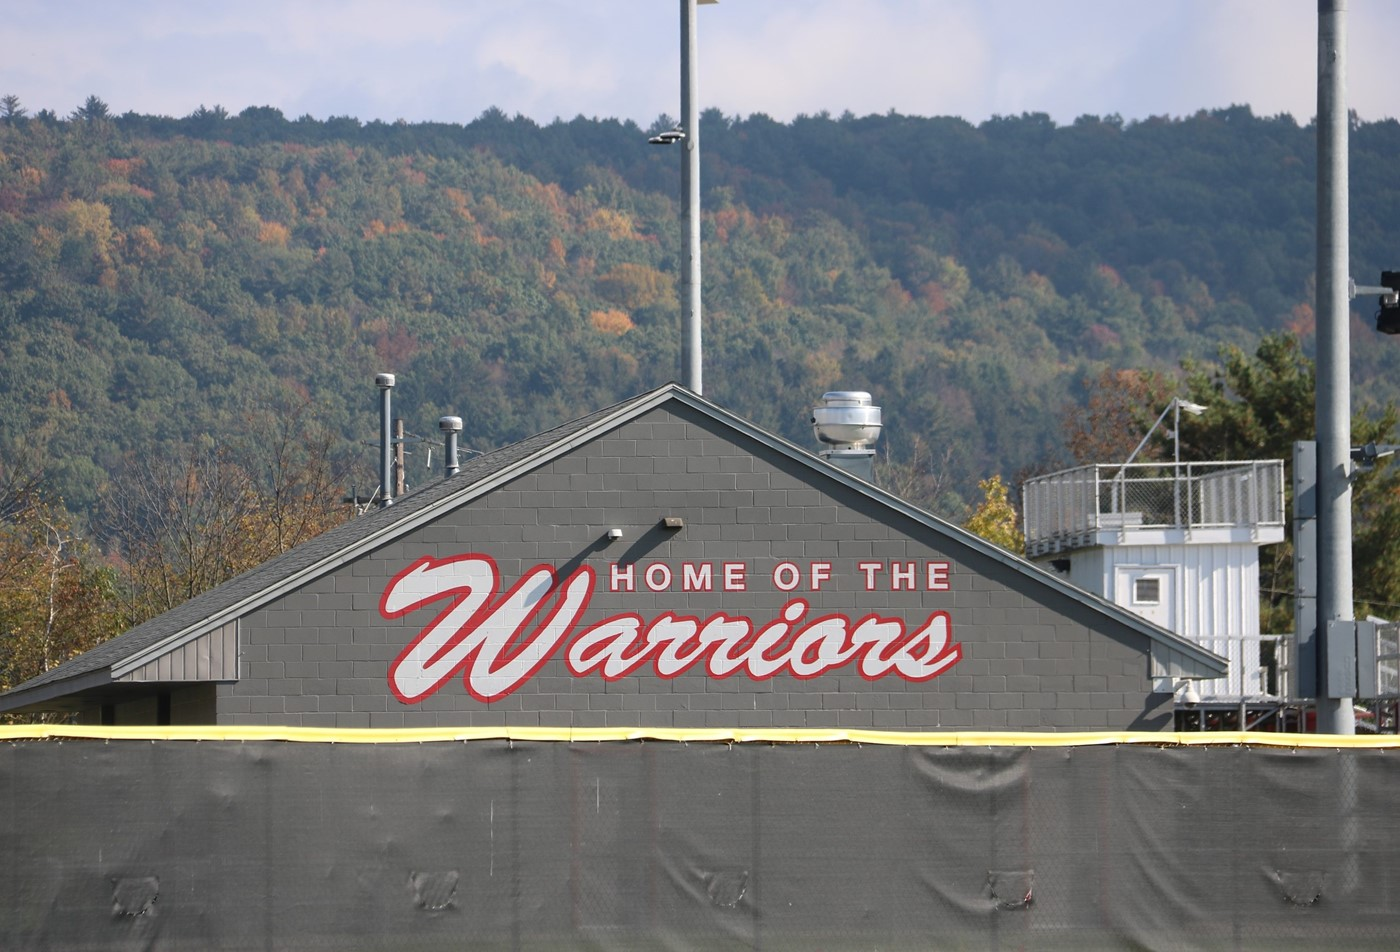 home of the warriors building